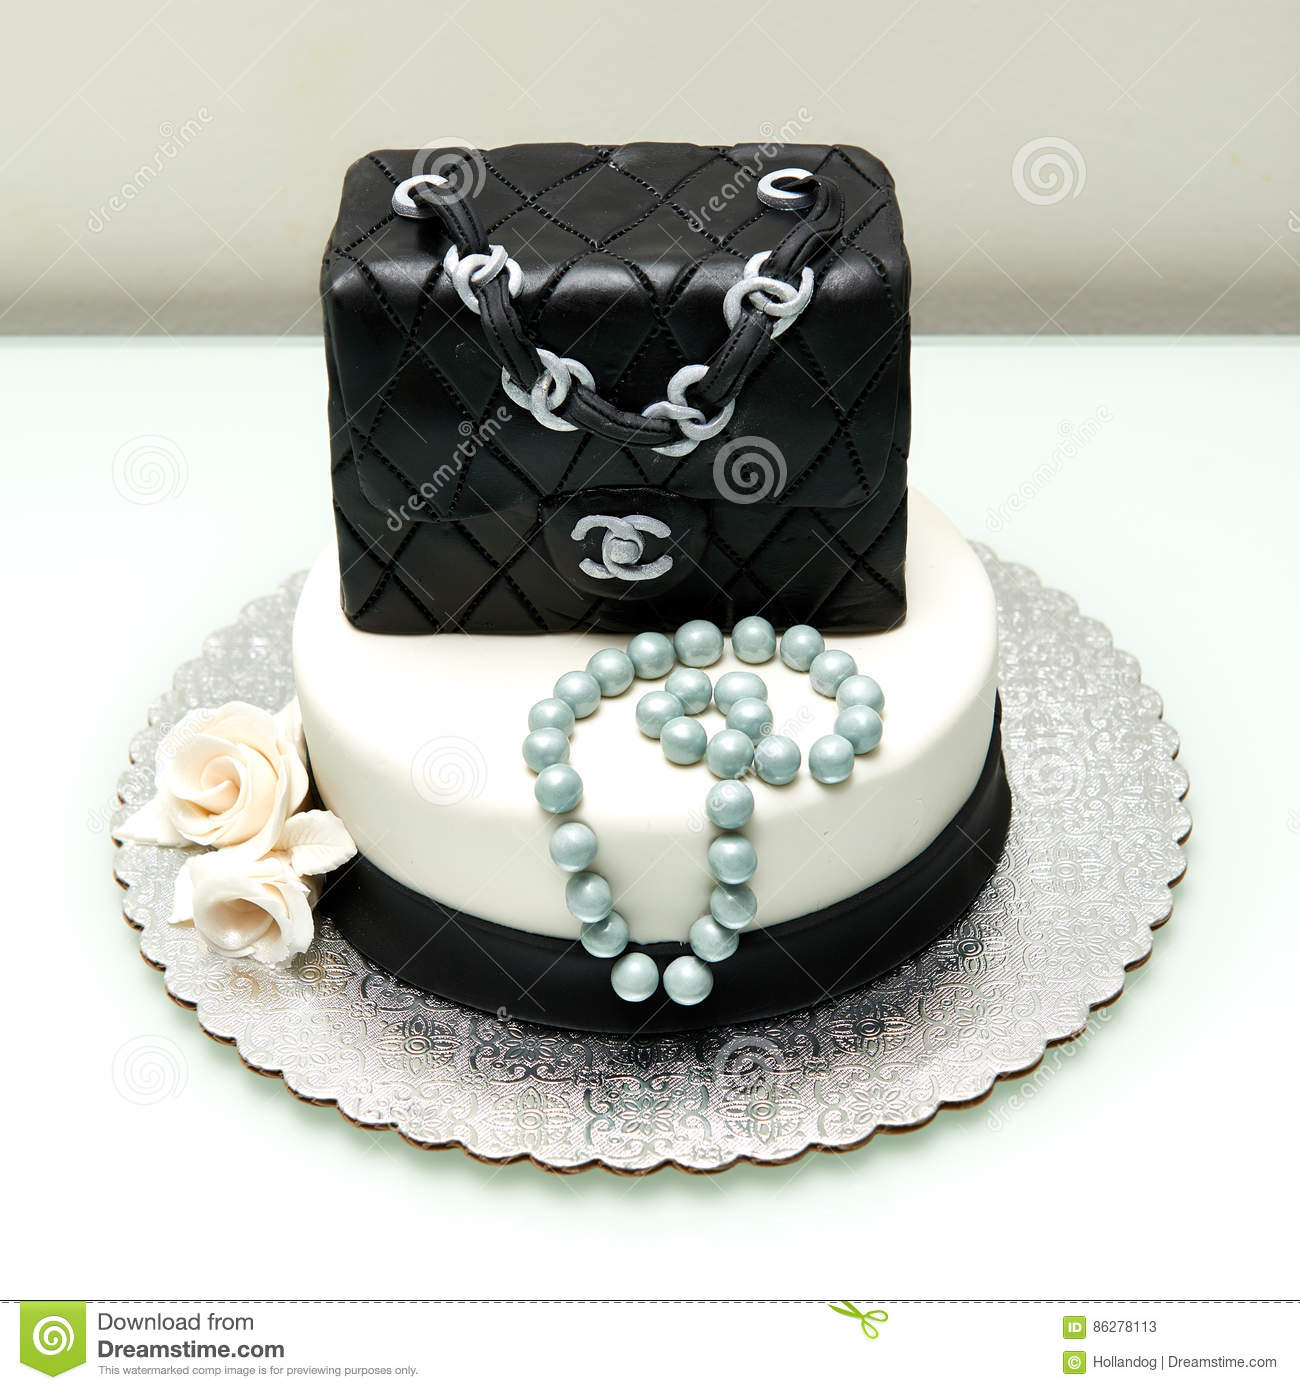 Chanel Classic Handbag Fountain Cake Editorial Stock Photo - Image ...